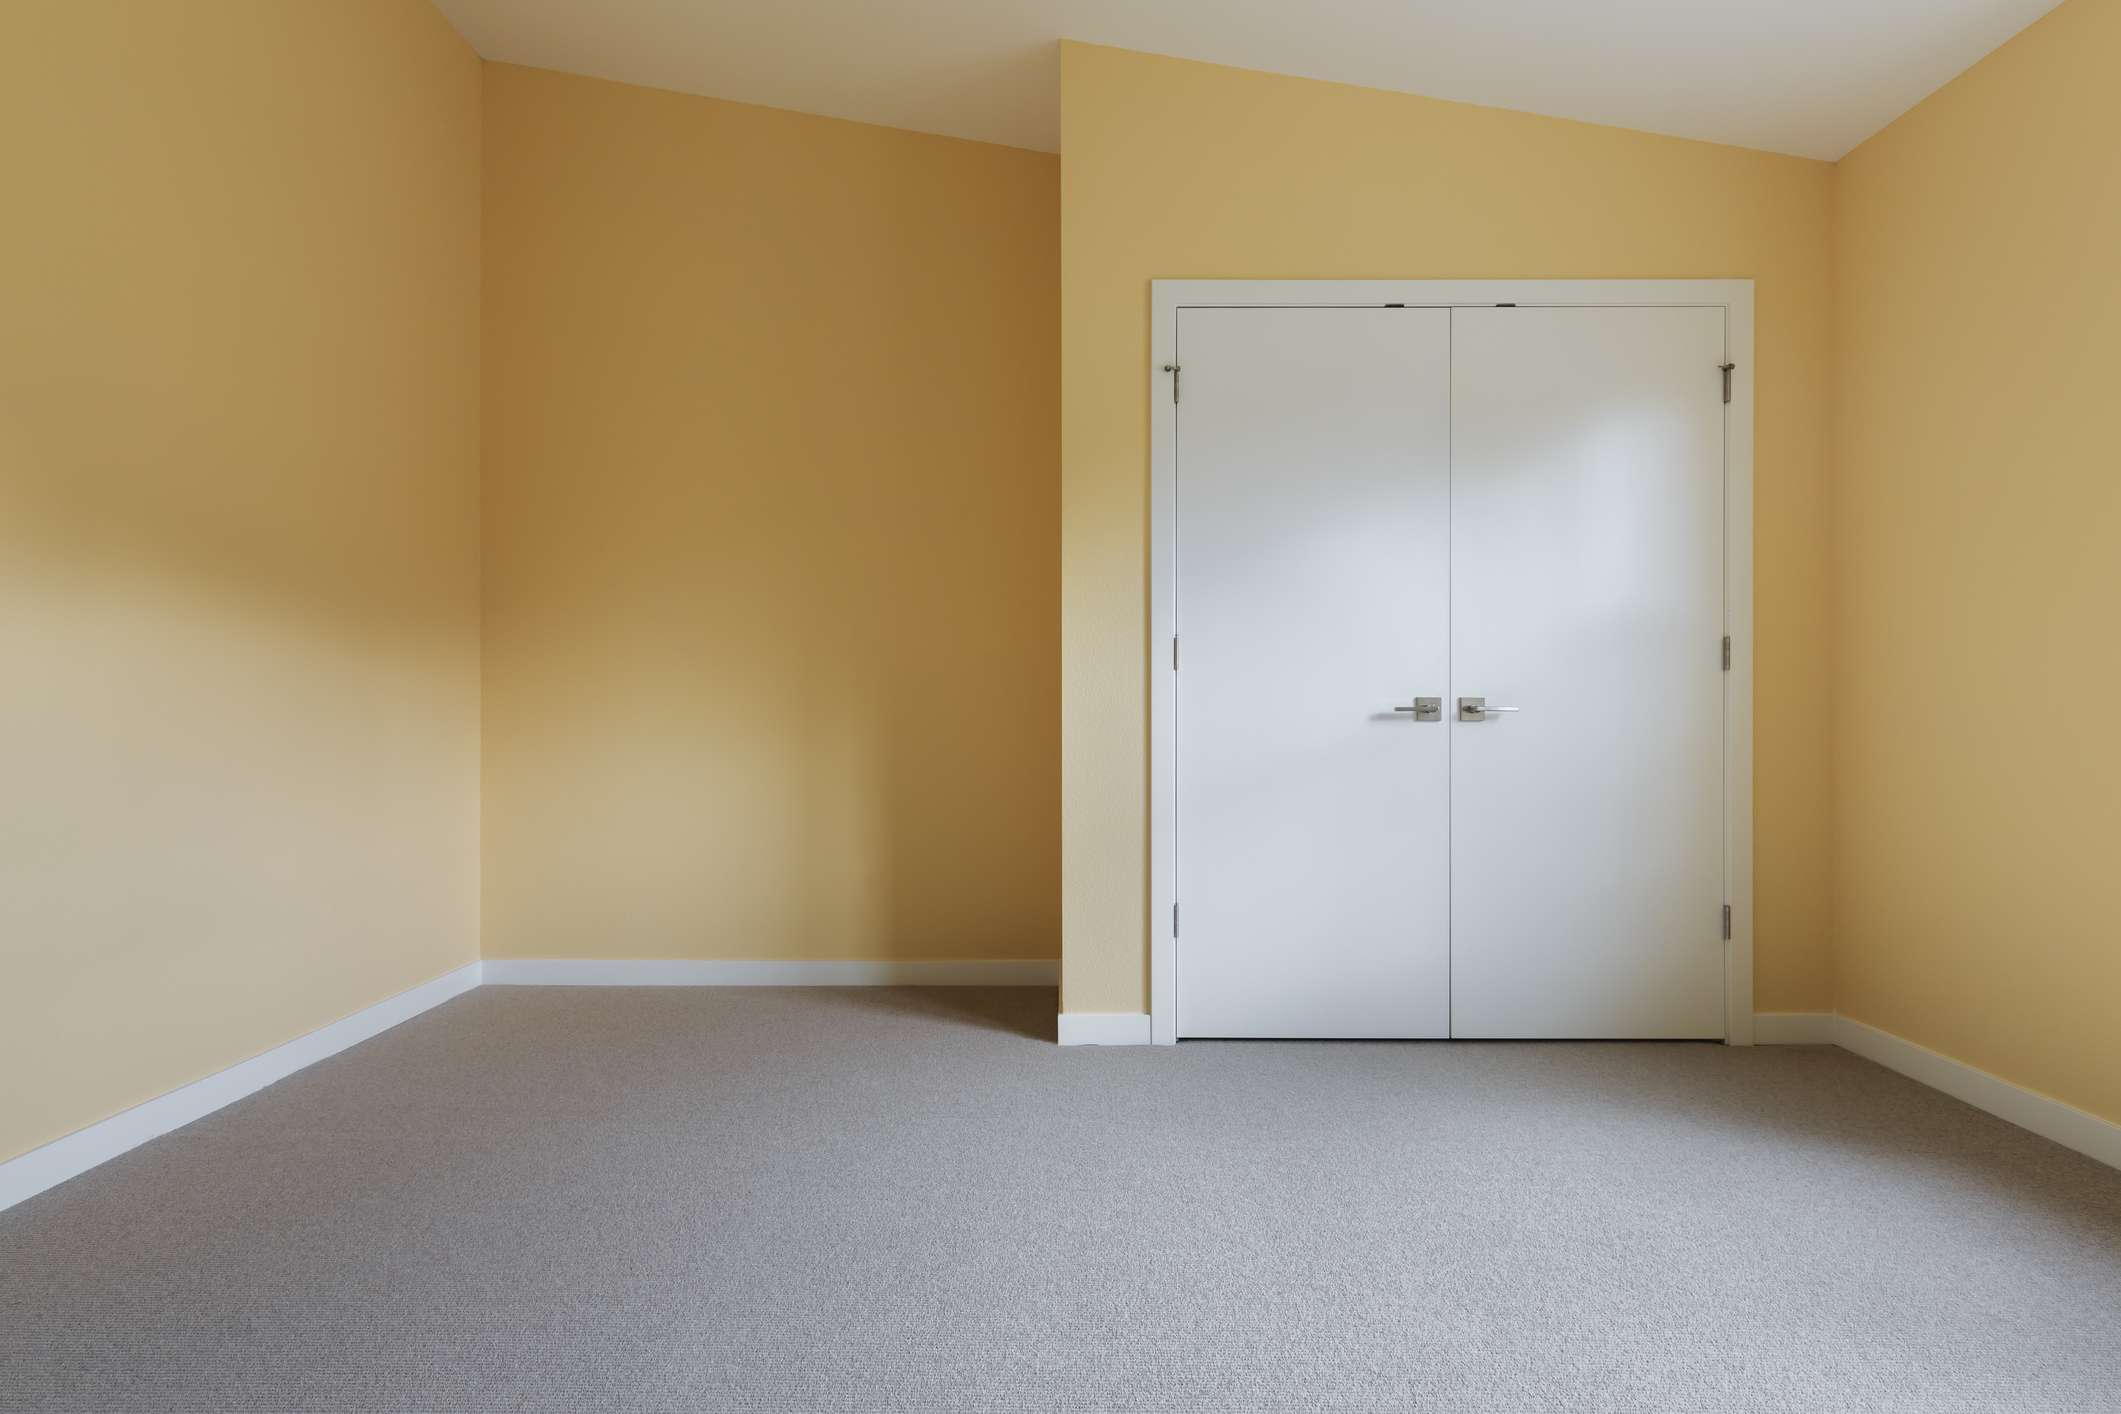 A windowless, interior room as a storm shelter